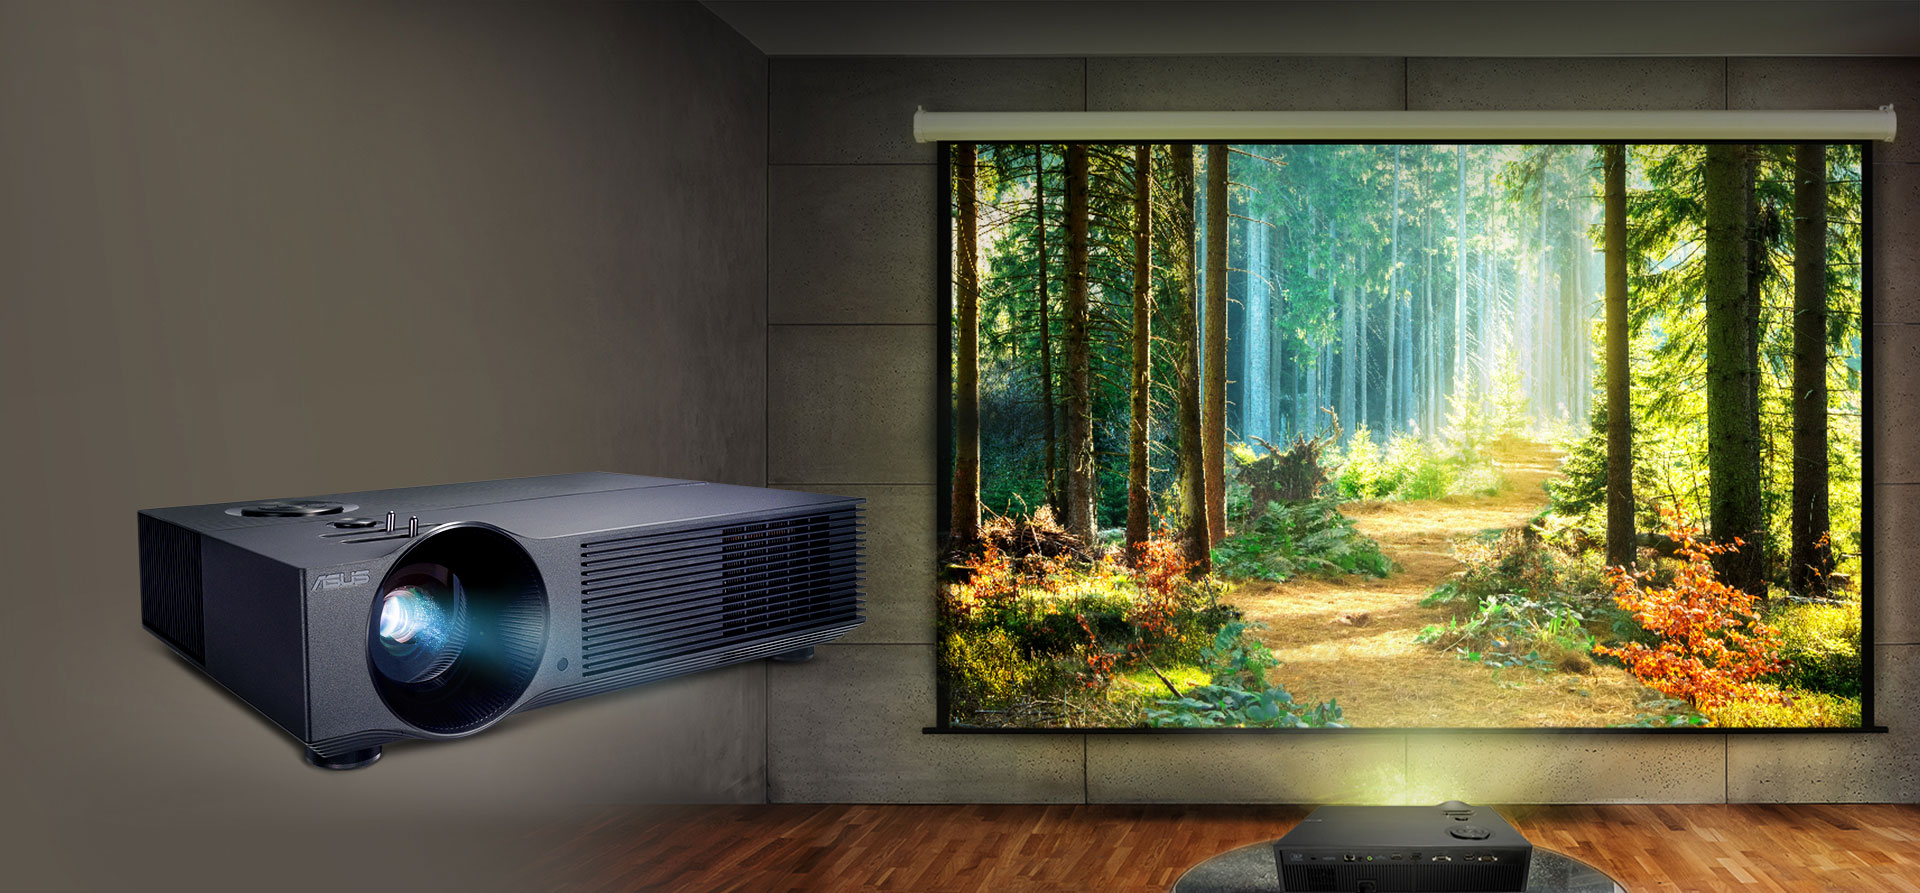 ASUS H1 3000-Lumen Full HD Home Theater & Conference Room DLP Projector